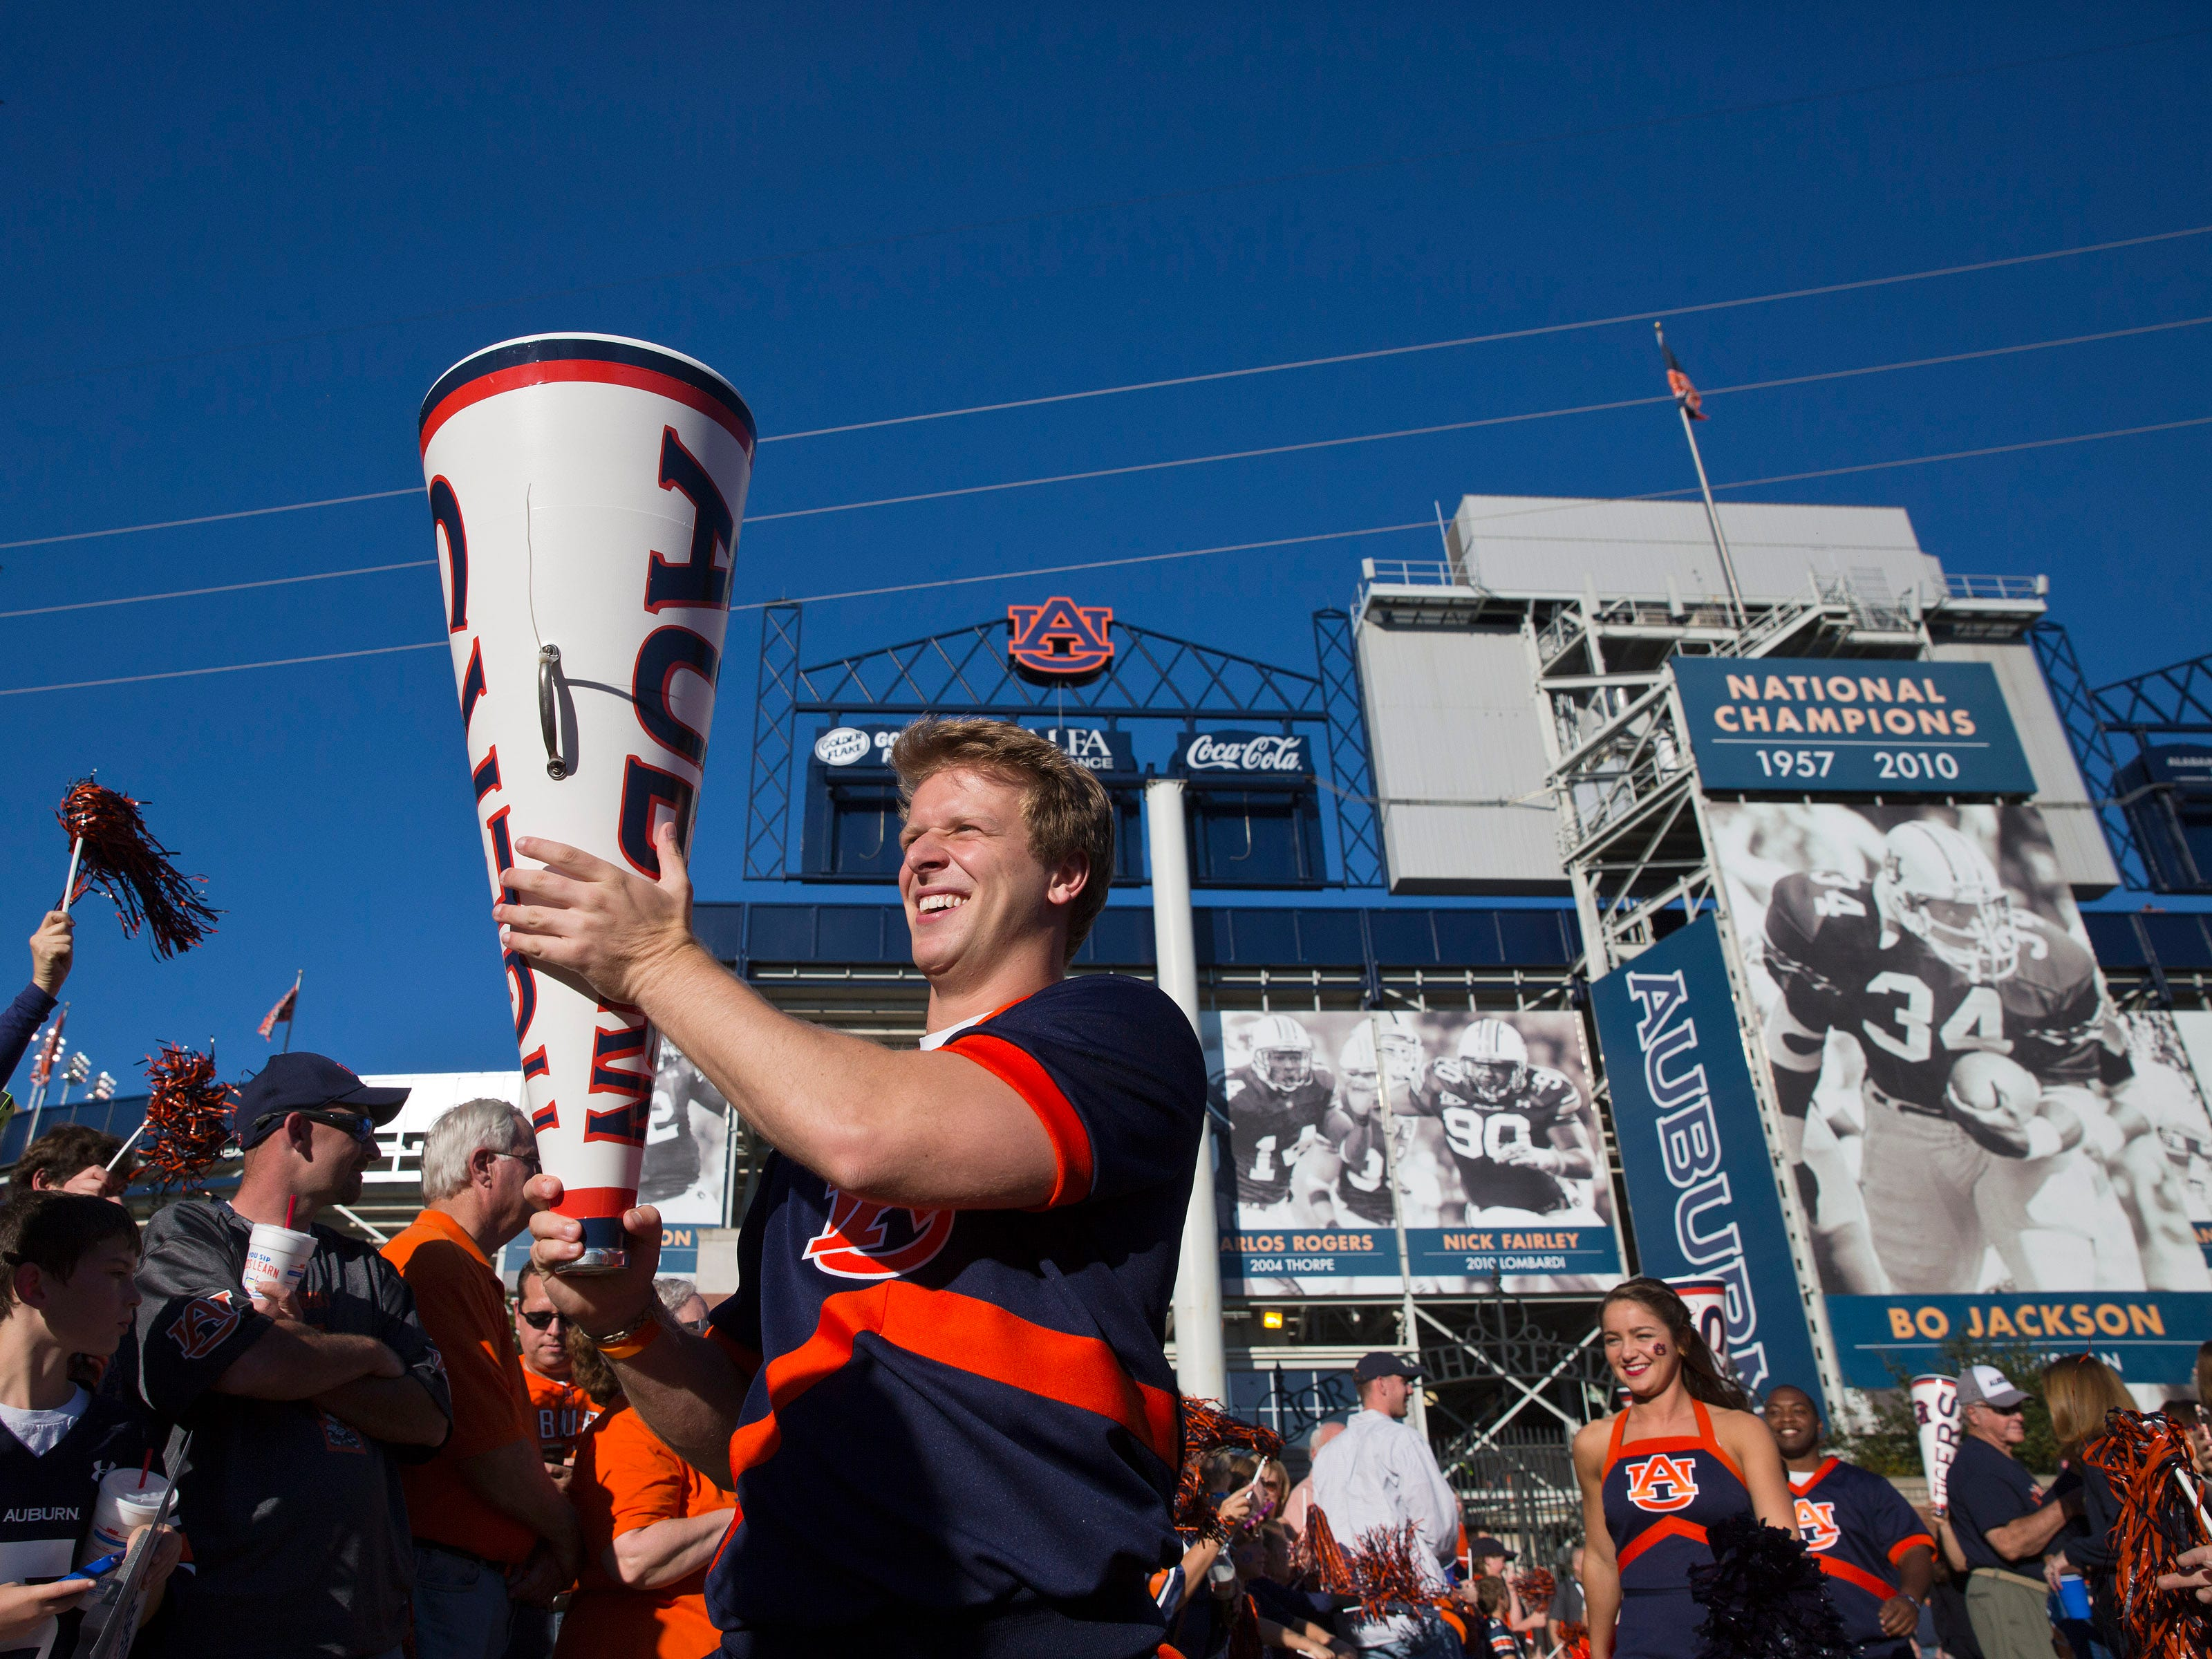 An Auburn cheerleader walks out during the Tiger Walk before an NCAA college football game against South Carolina on Saturday, Oct. 25, 2014, in Auburn, Ala. (AP Photo/Brynn Anderson)